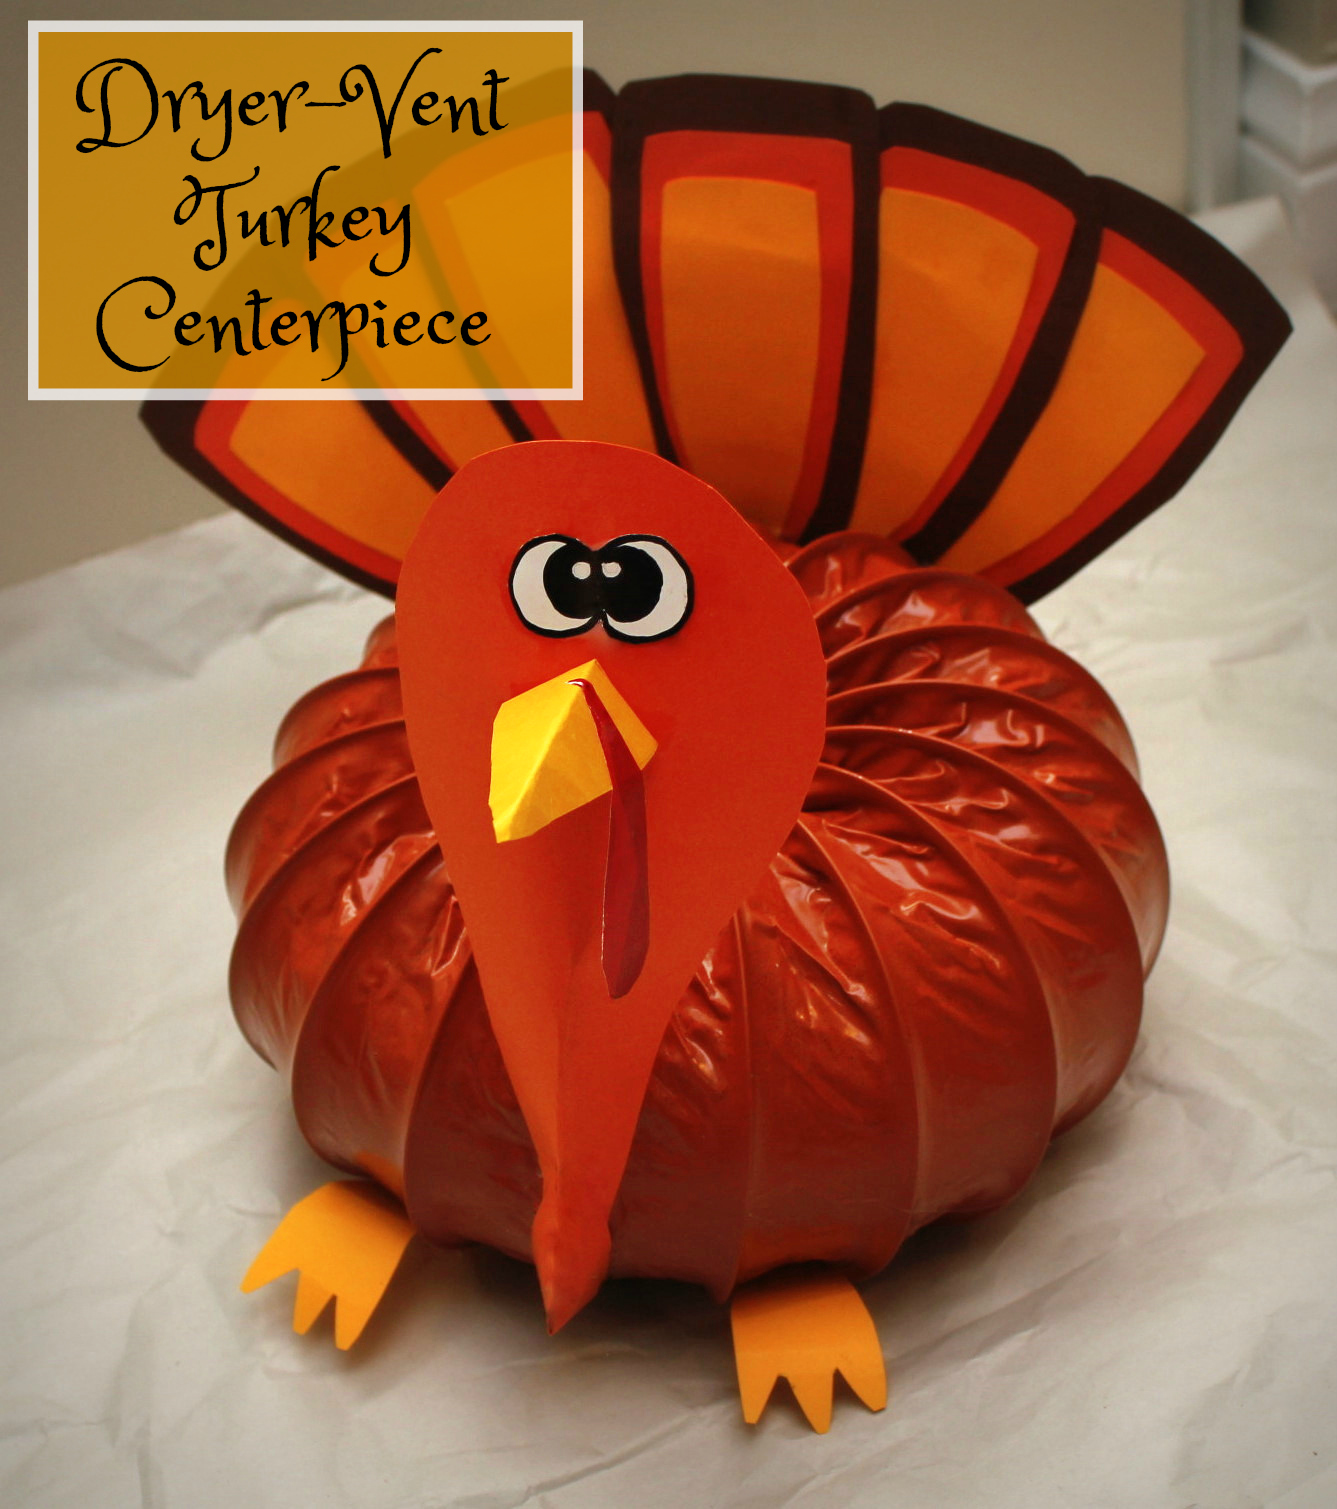 Dryer-Vent Turkey Centerpiece